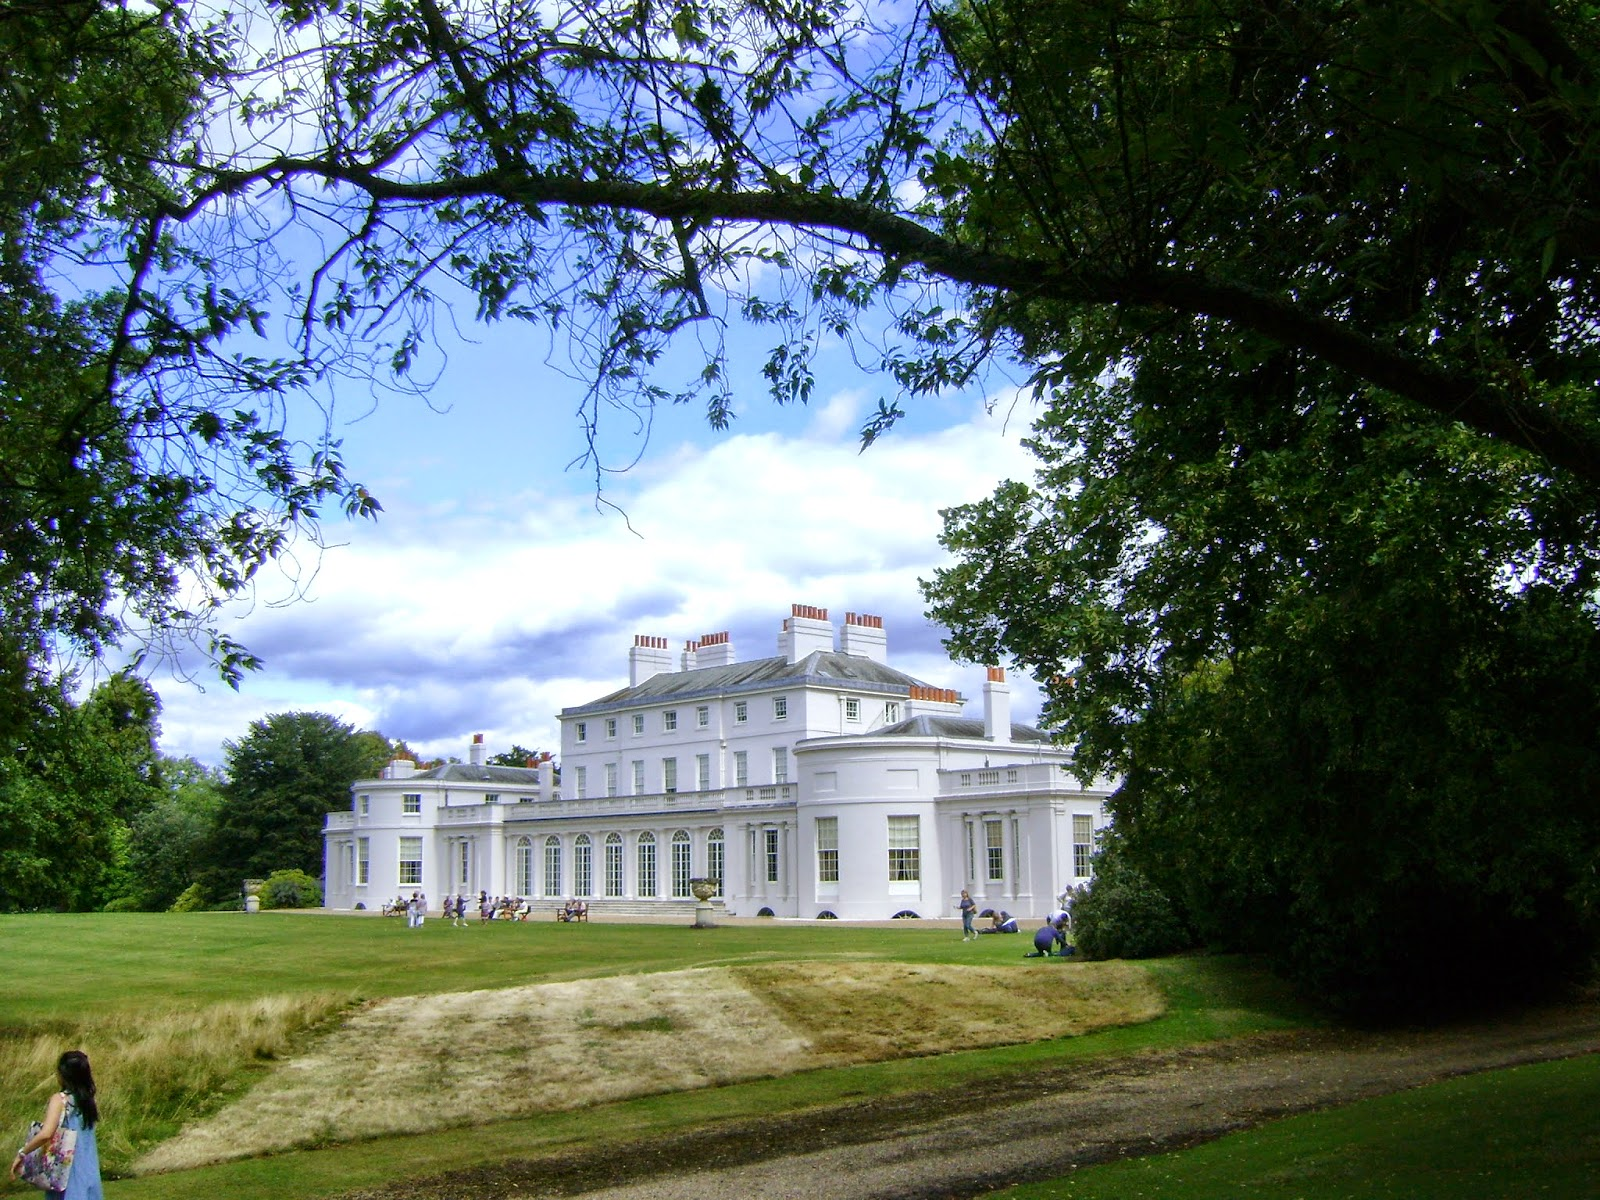 Mr O 39 S Tour Queen Victoria 39 S Frogmore House And The Queen 39 S 39 Farm Stall 39